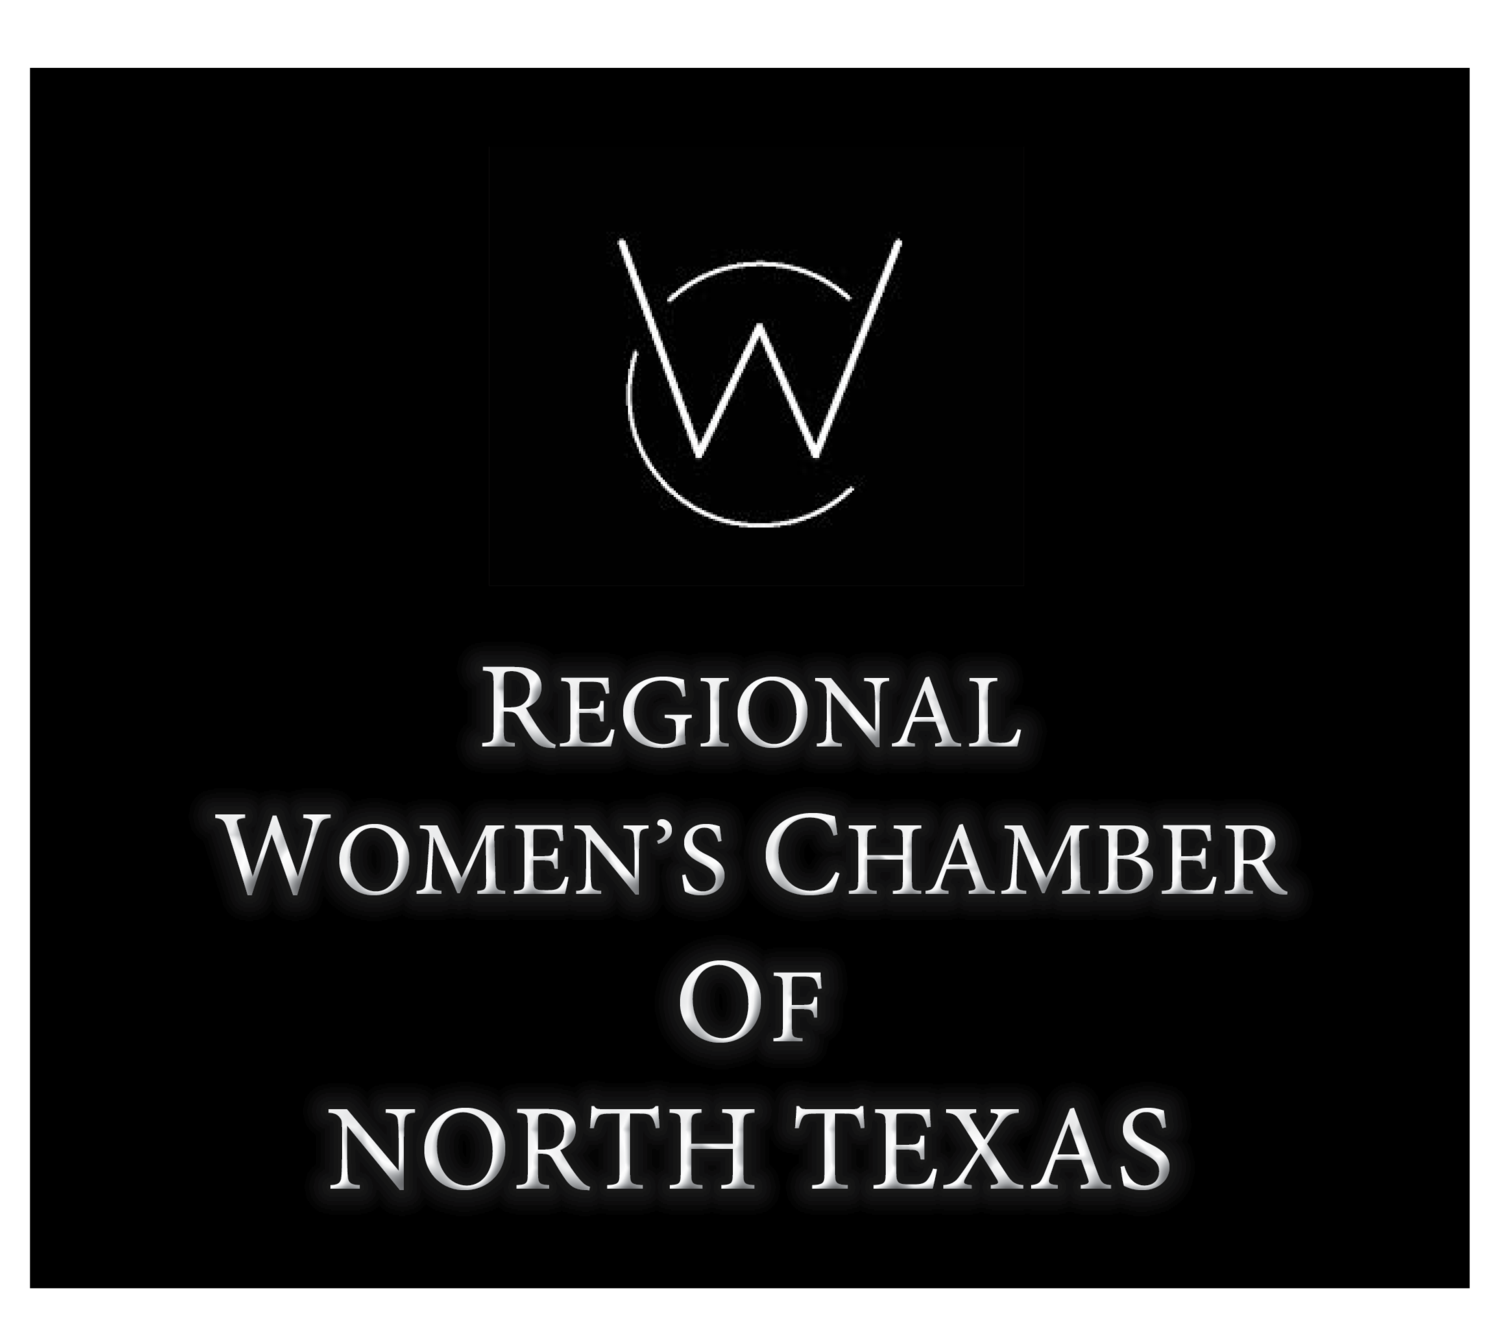 Regional Women's Chamber of North Texas